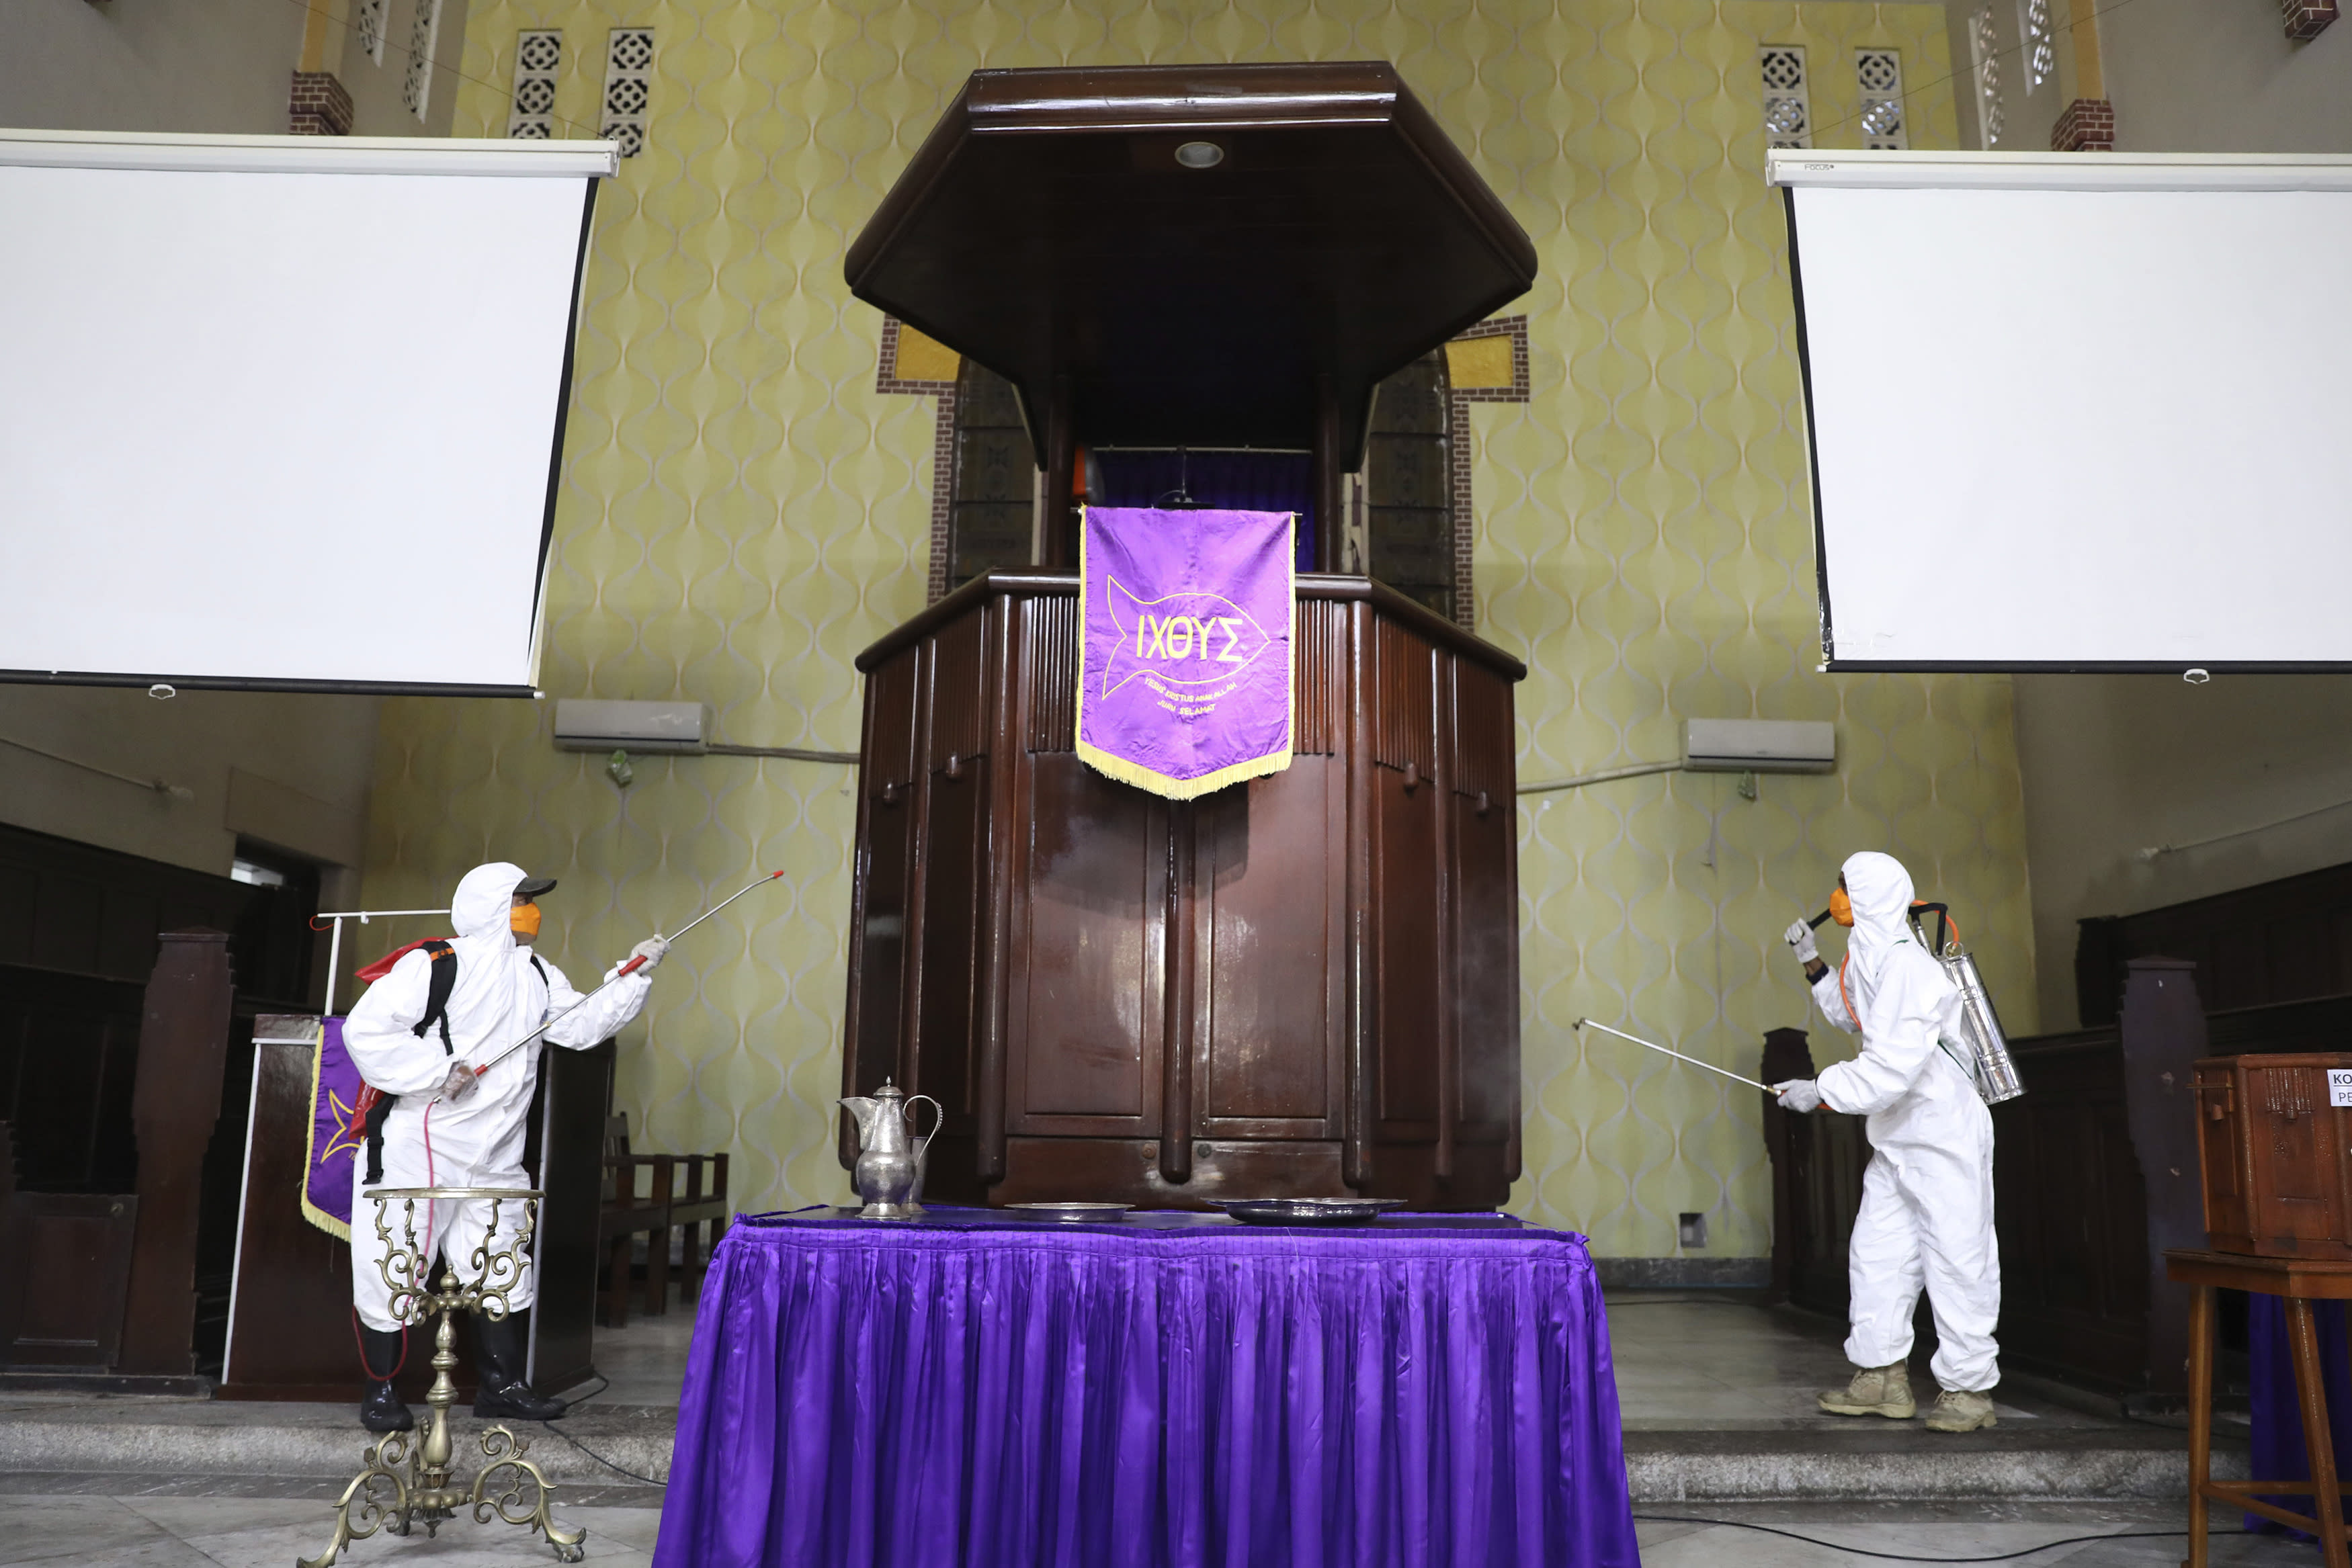 Workers of Disaster Mitigation Agency spray disinfectant inside a church amid fears of the new coronavirus outbreak in Surabaya, East Java, Indonesia, Wednesday, March 18, 2020. For most people, the new coronavirus causes only mild or moderate symptoms. For some it can cause more severe illness. (AP Photo/Trisnadi)